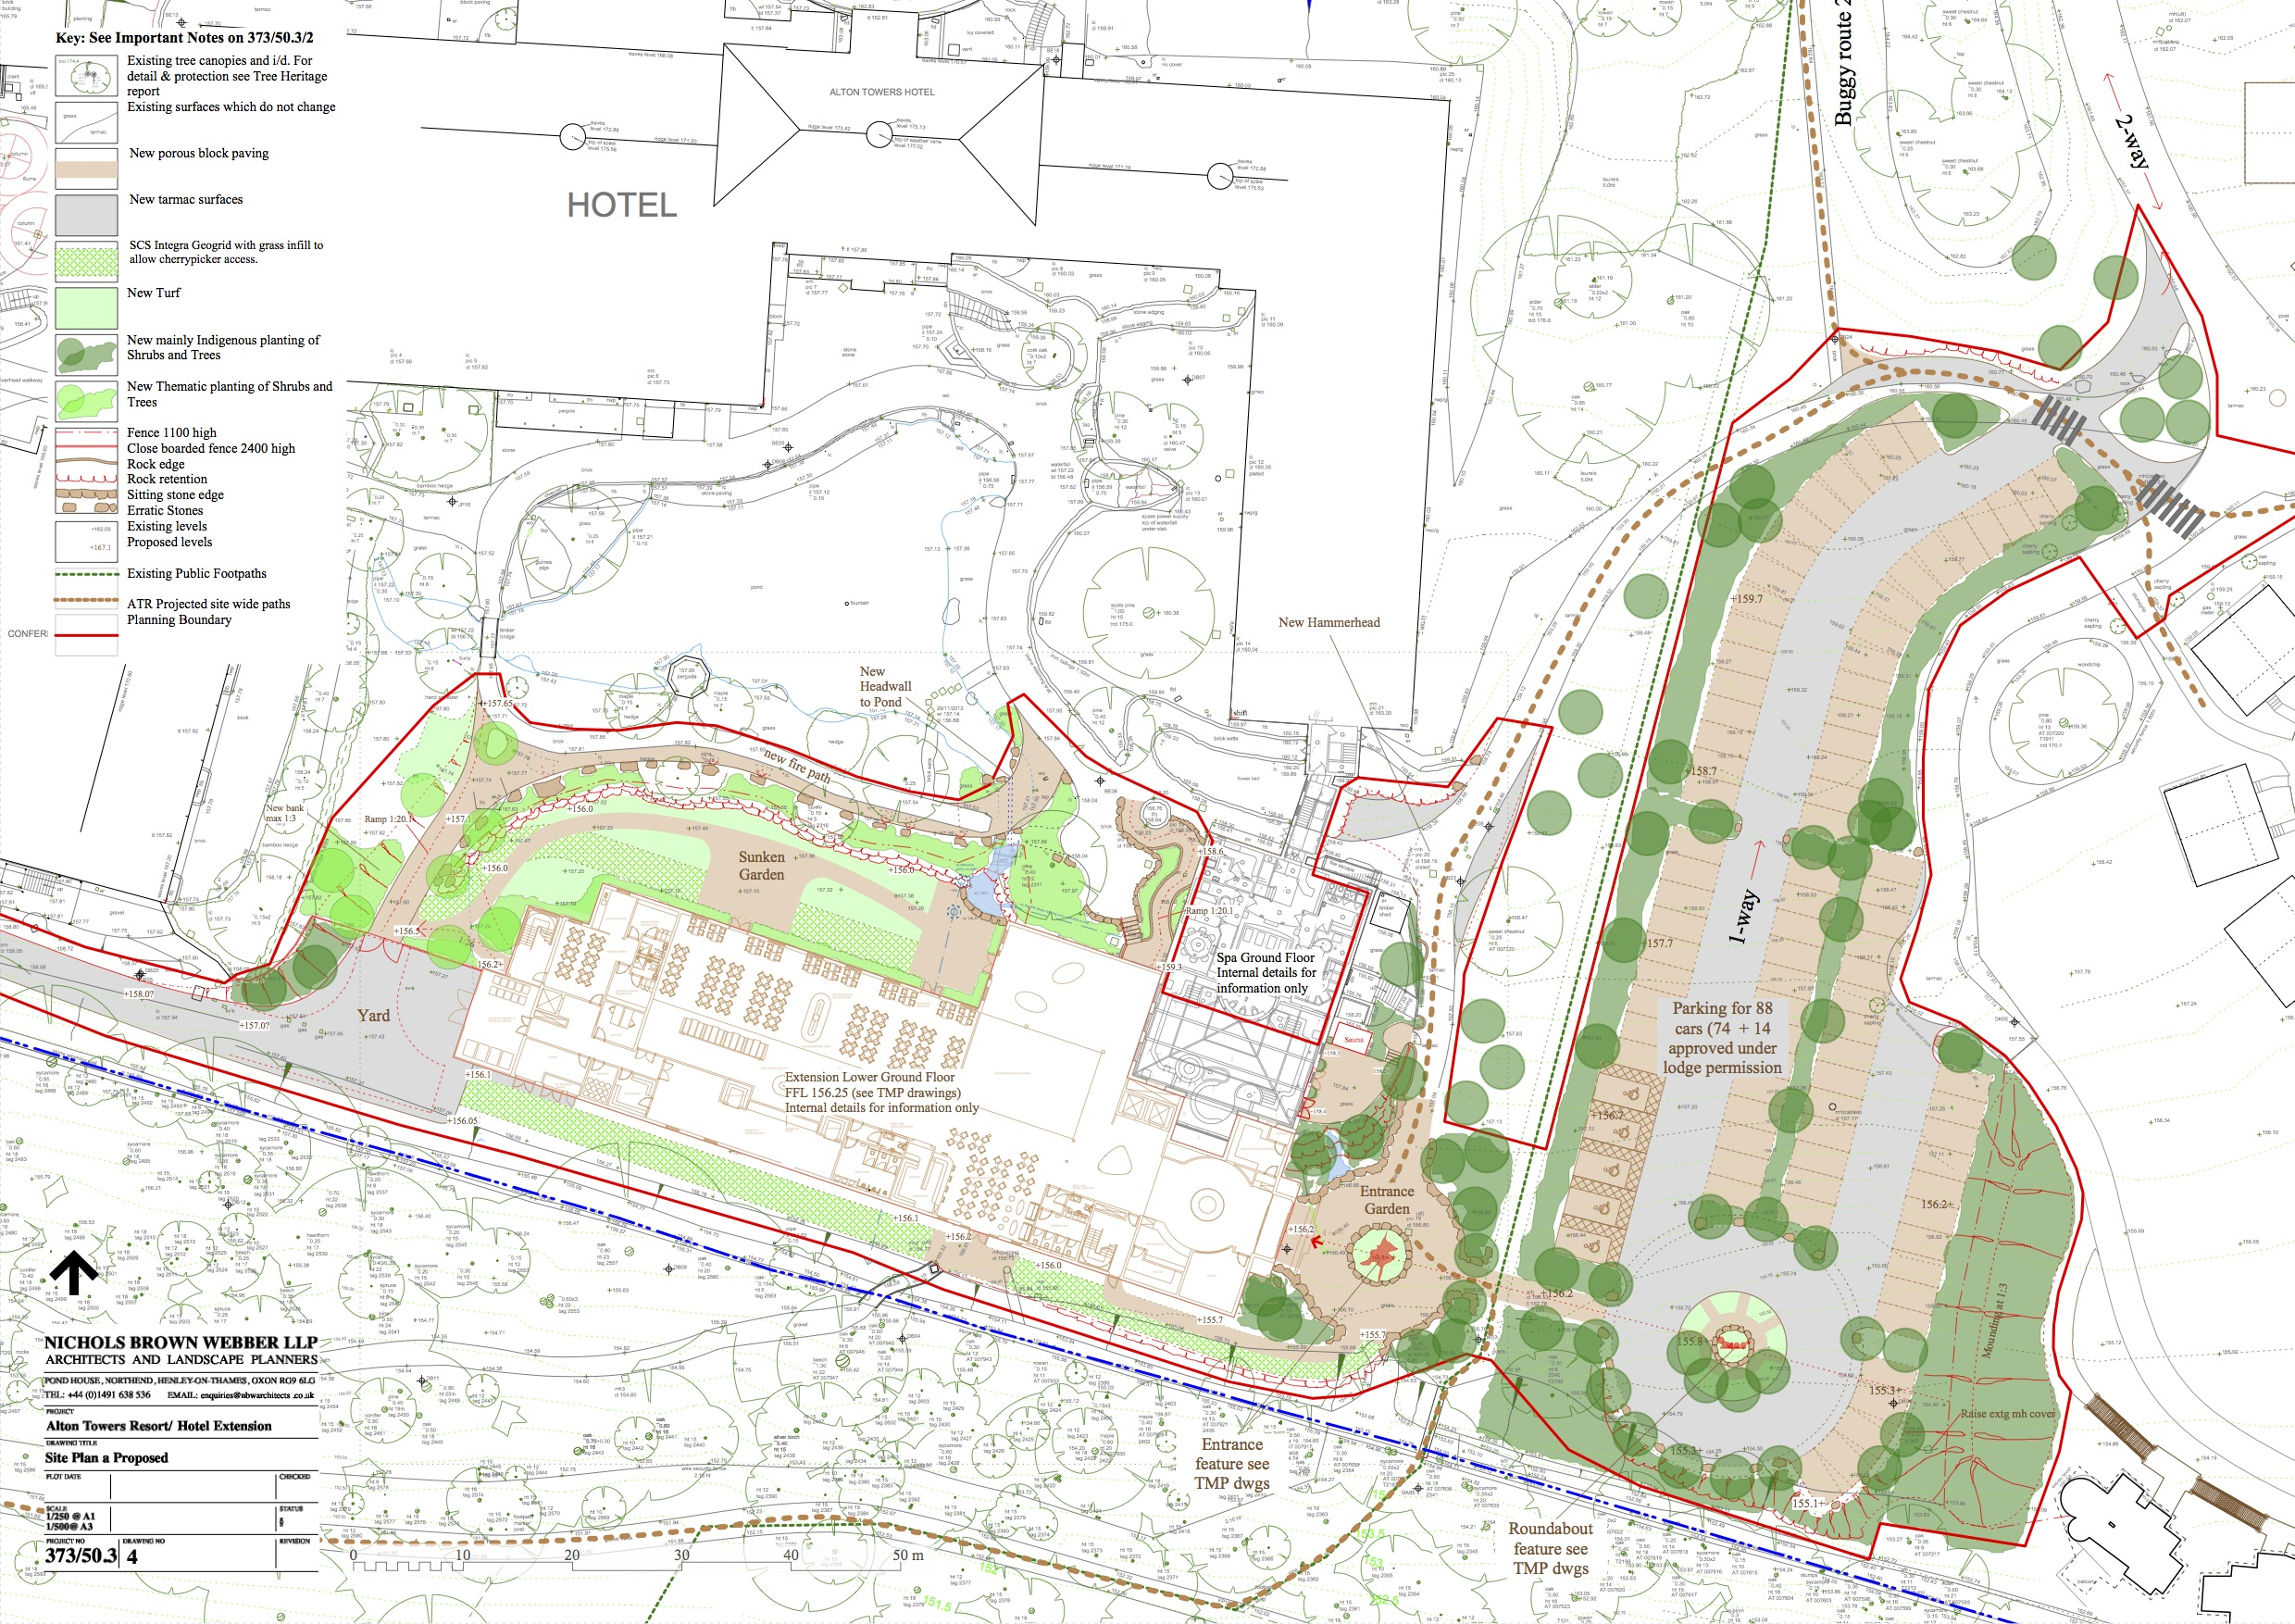 New alton towers hotel extension and restaurant plans for Planner site